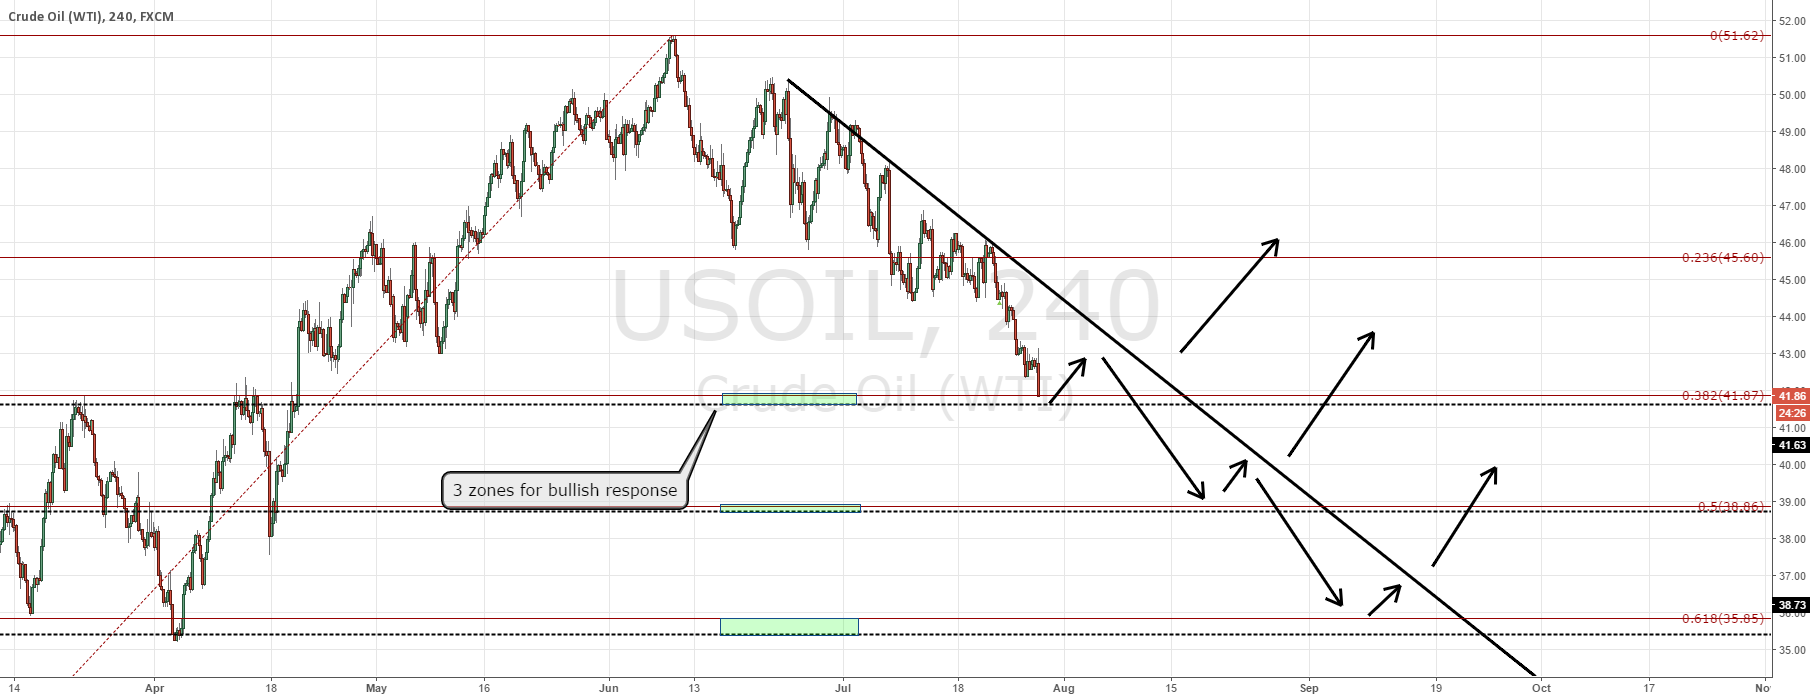 Oil update and price action projection